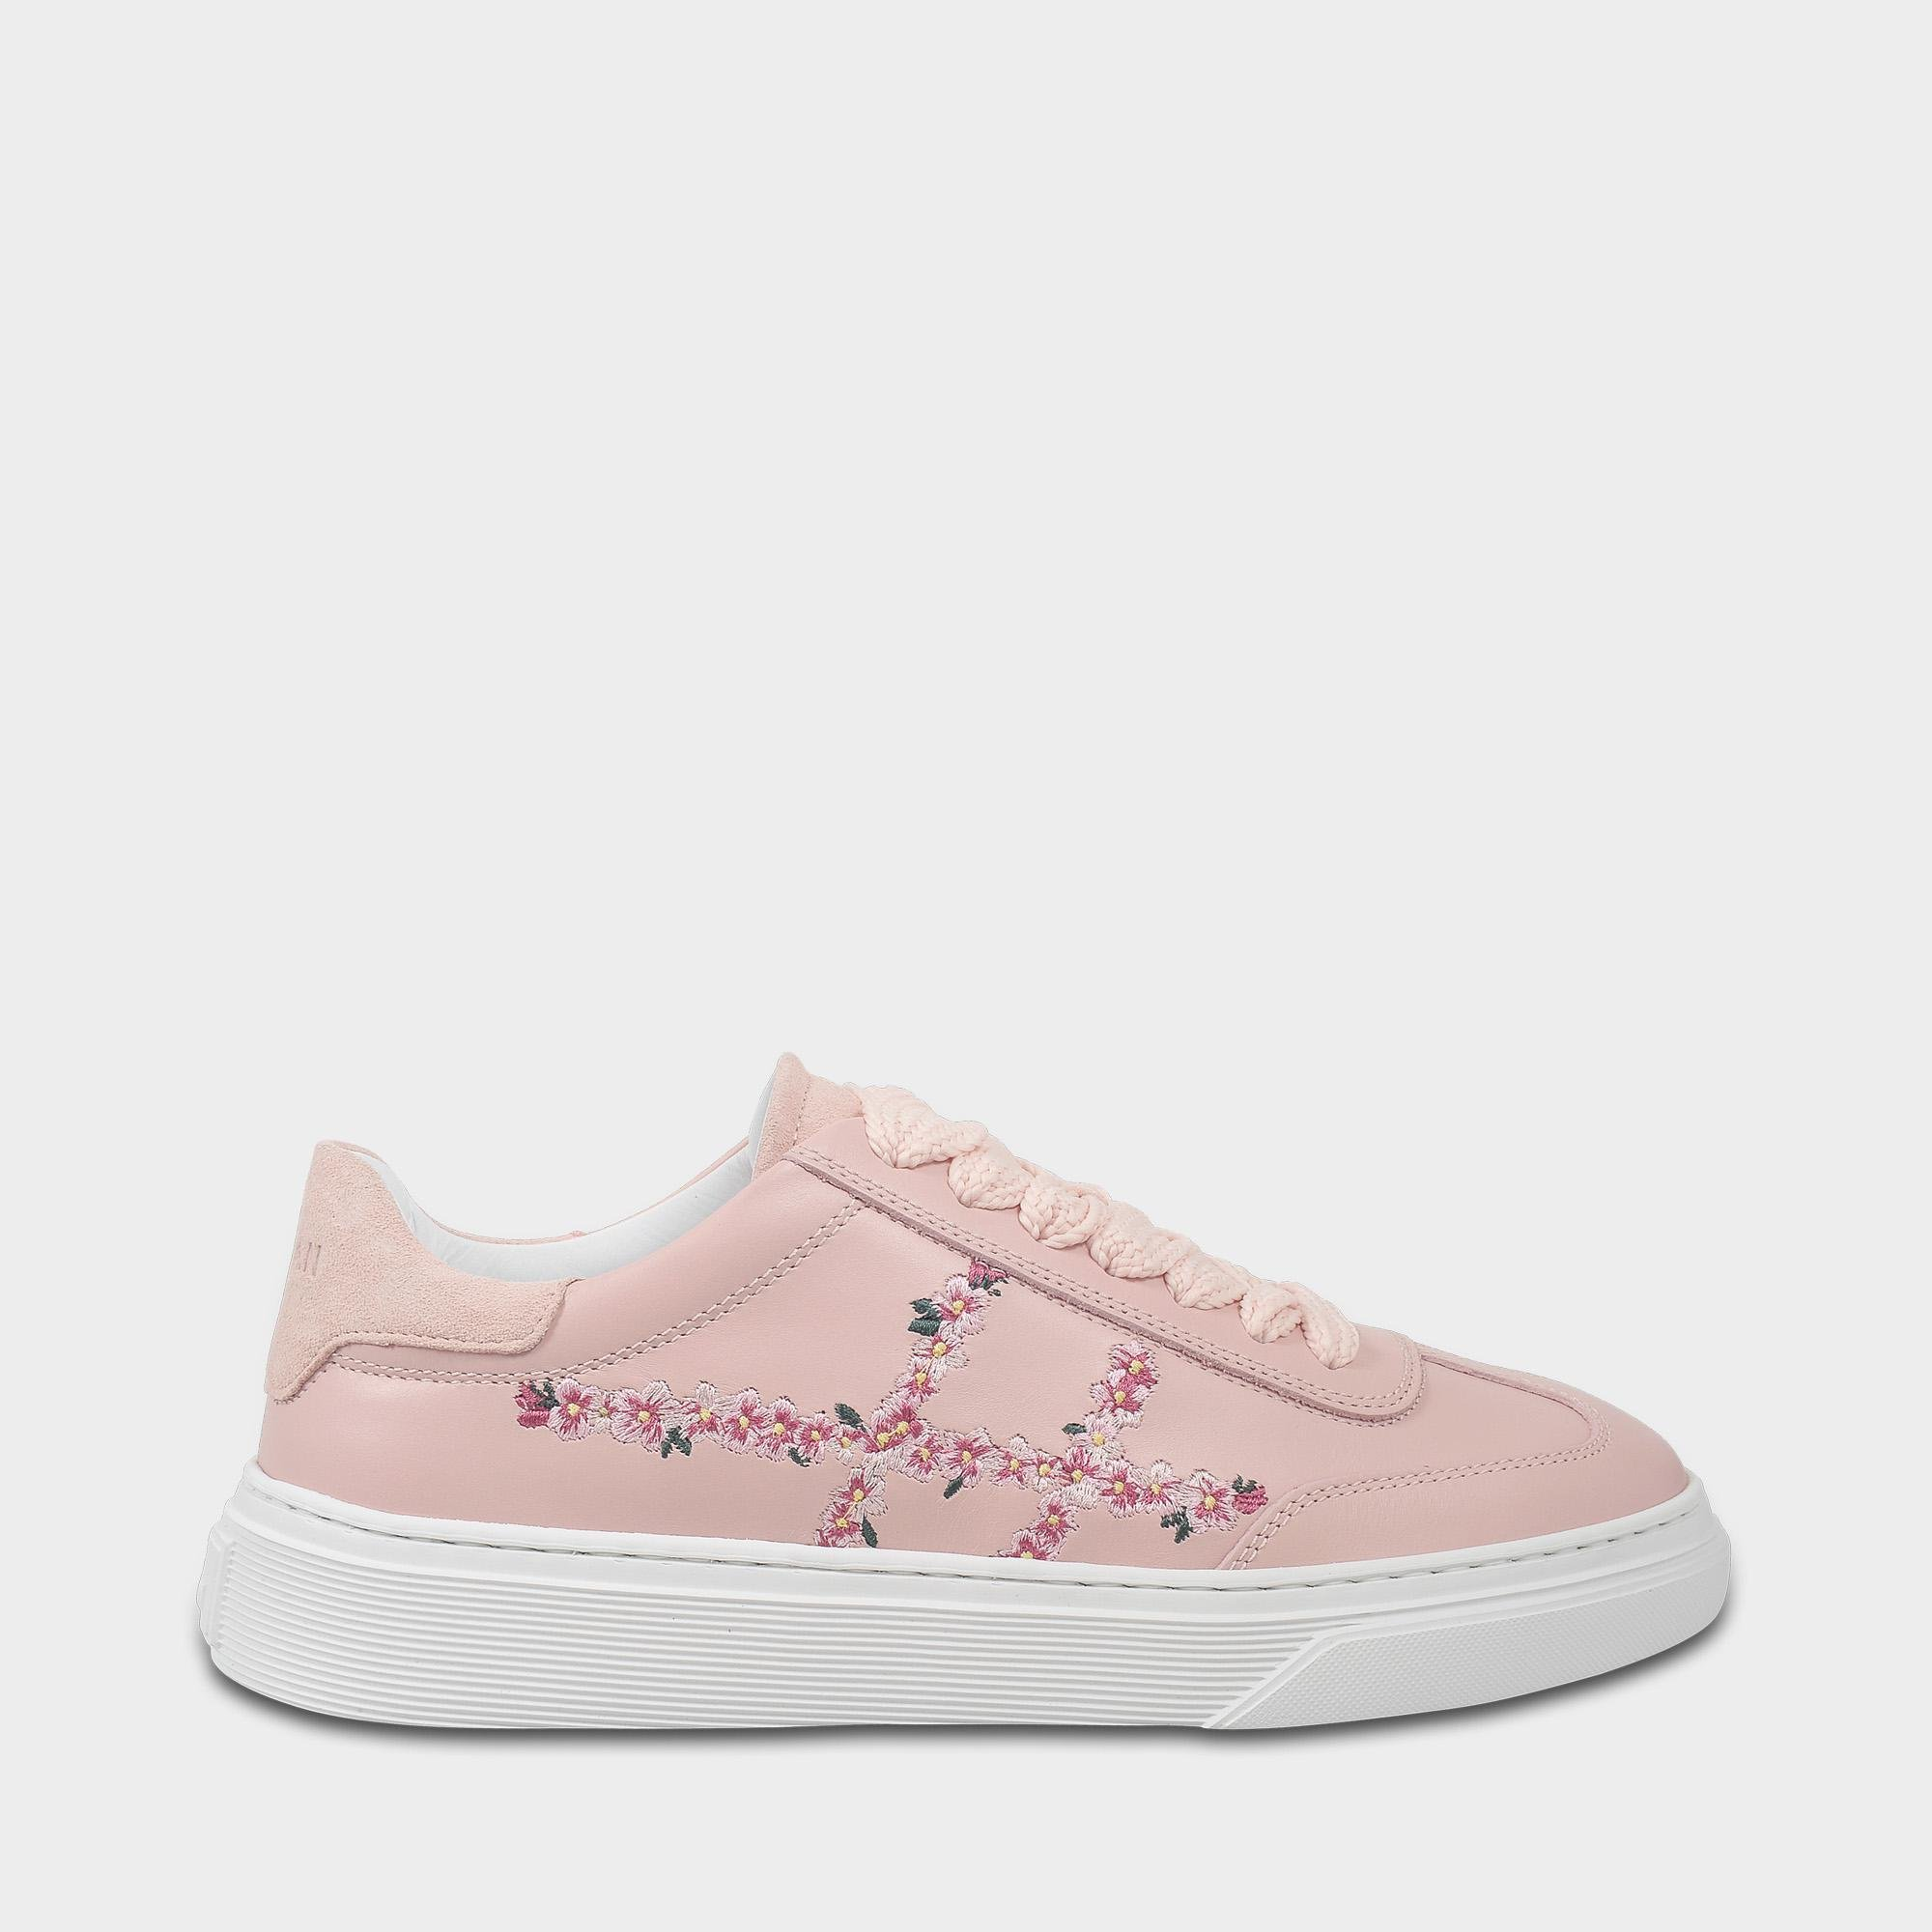 H258 Traditonal Suede Sneakers in Pink Leather Hogan gx2tnKM3